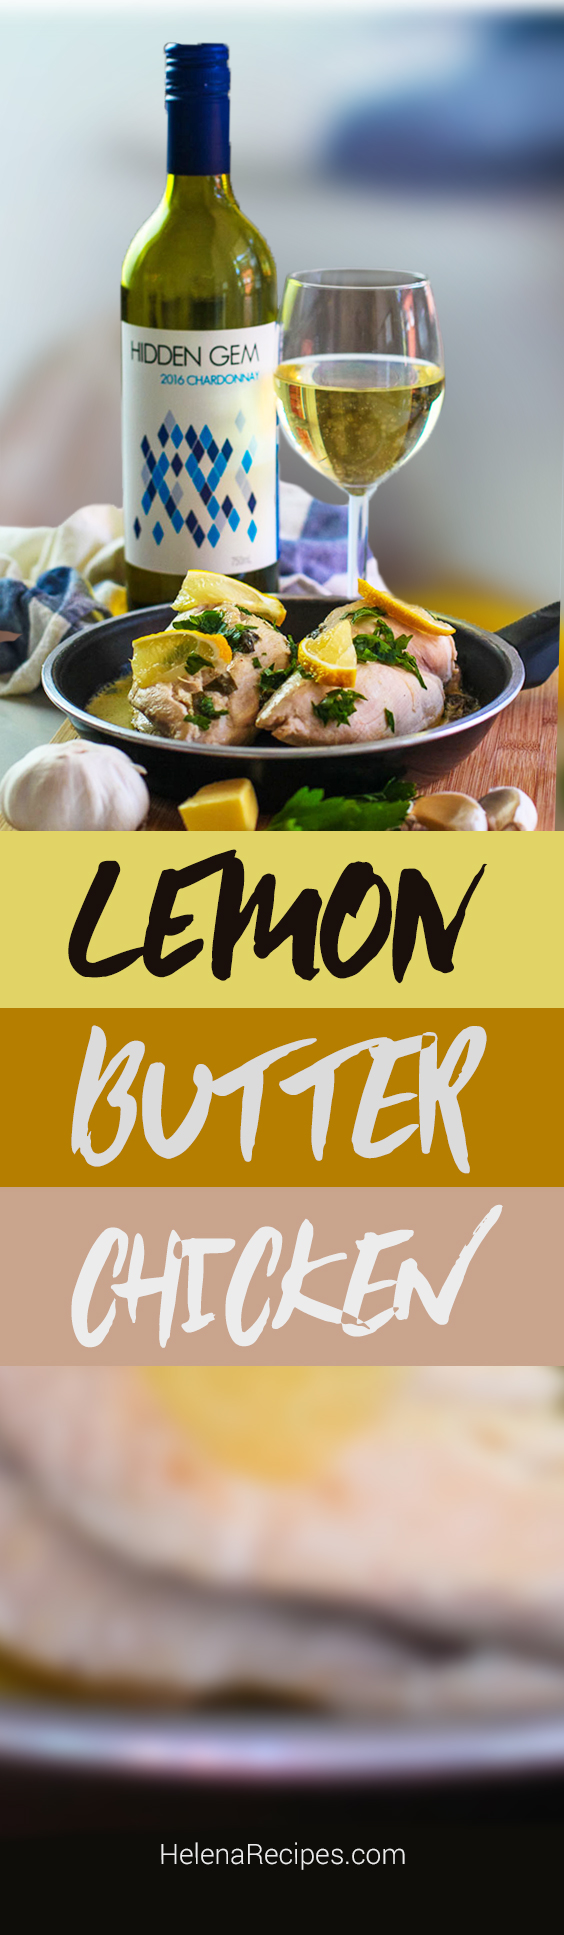 Lemon Butter Chicken Recipe Image for HelenaRecipes.com.